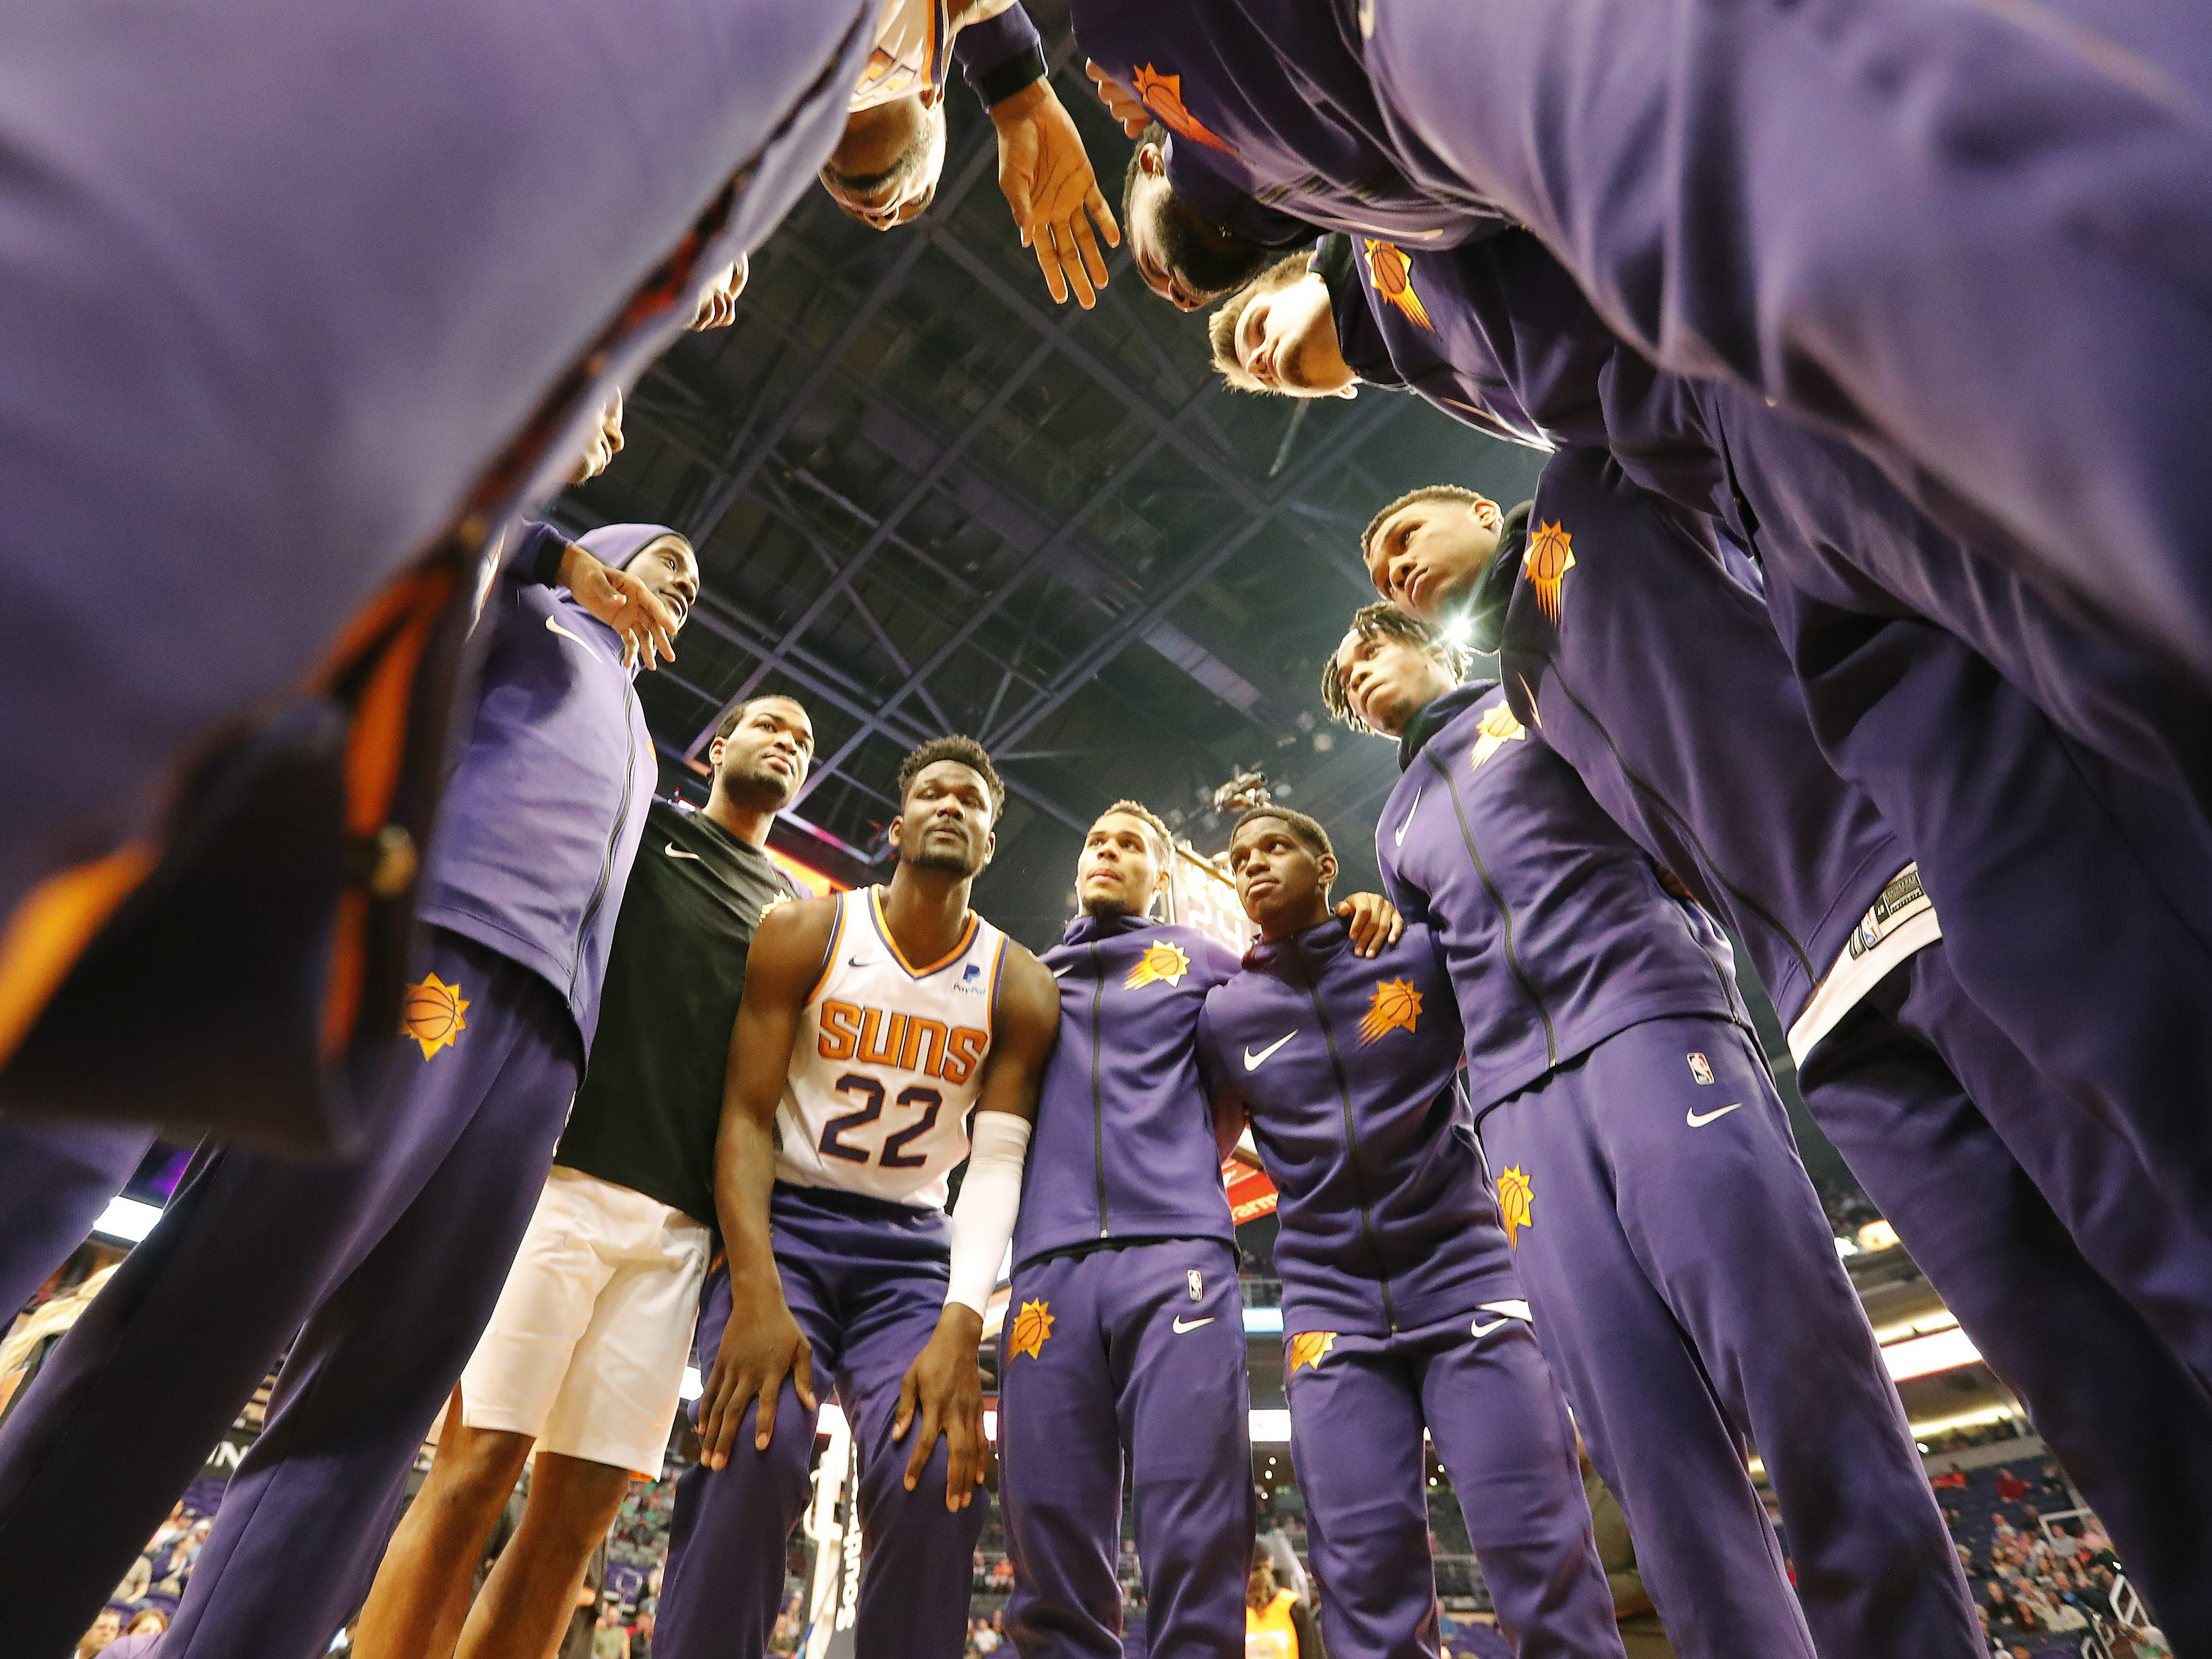 Phoenix Suns players huddle before playing against the LA Clippers in Phoenix, Ariz. December 10.